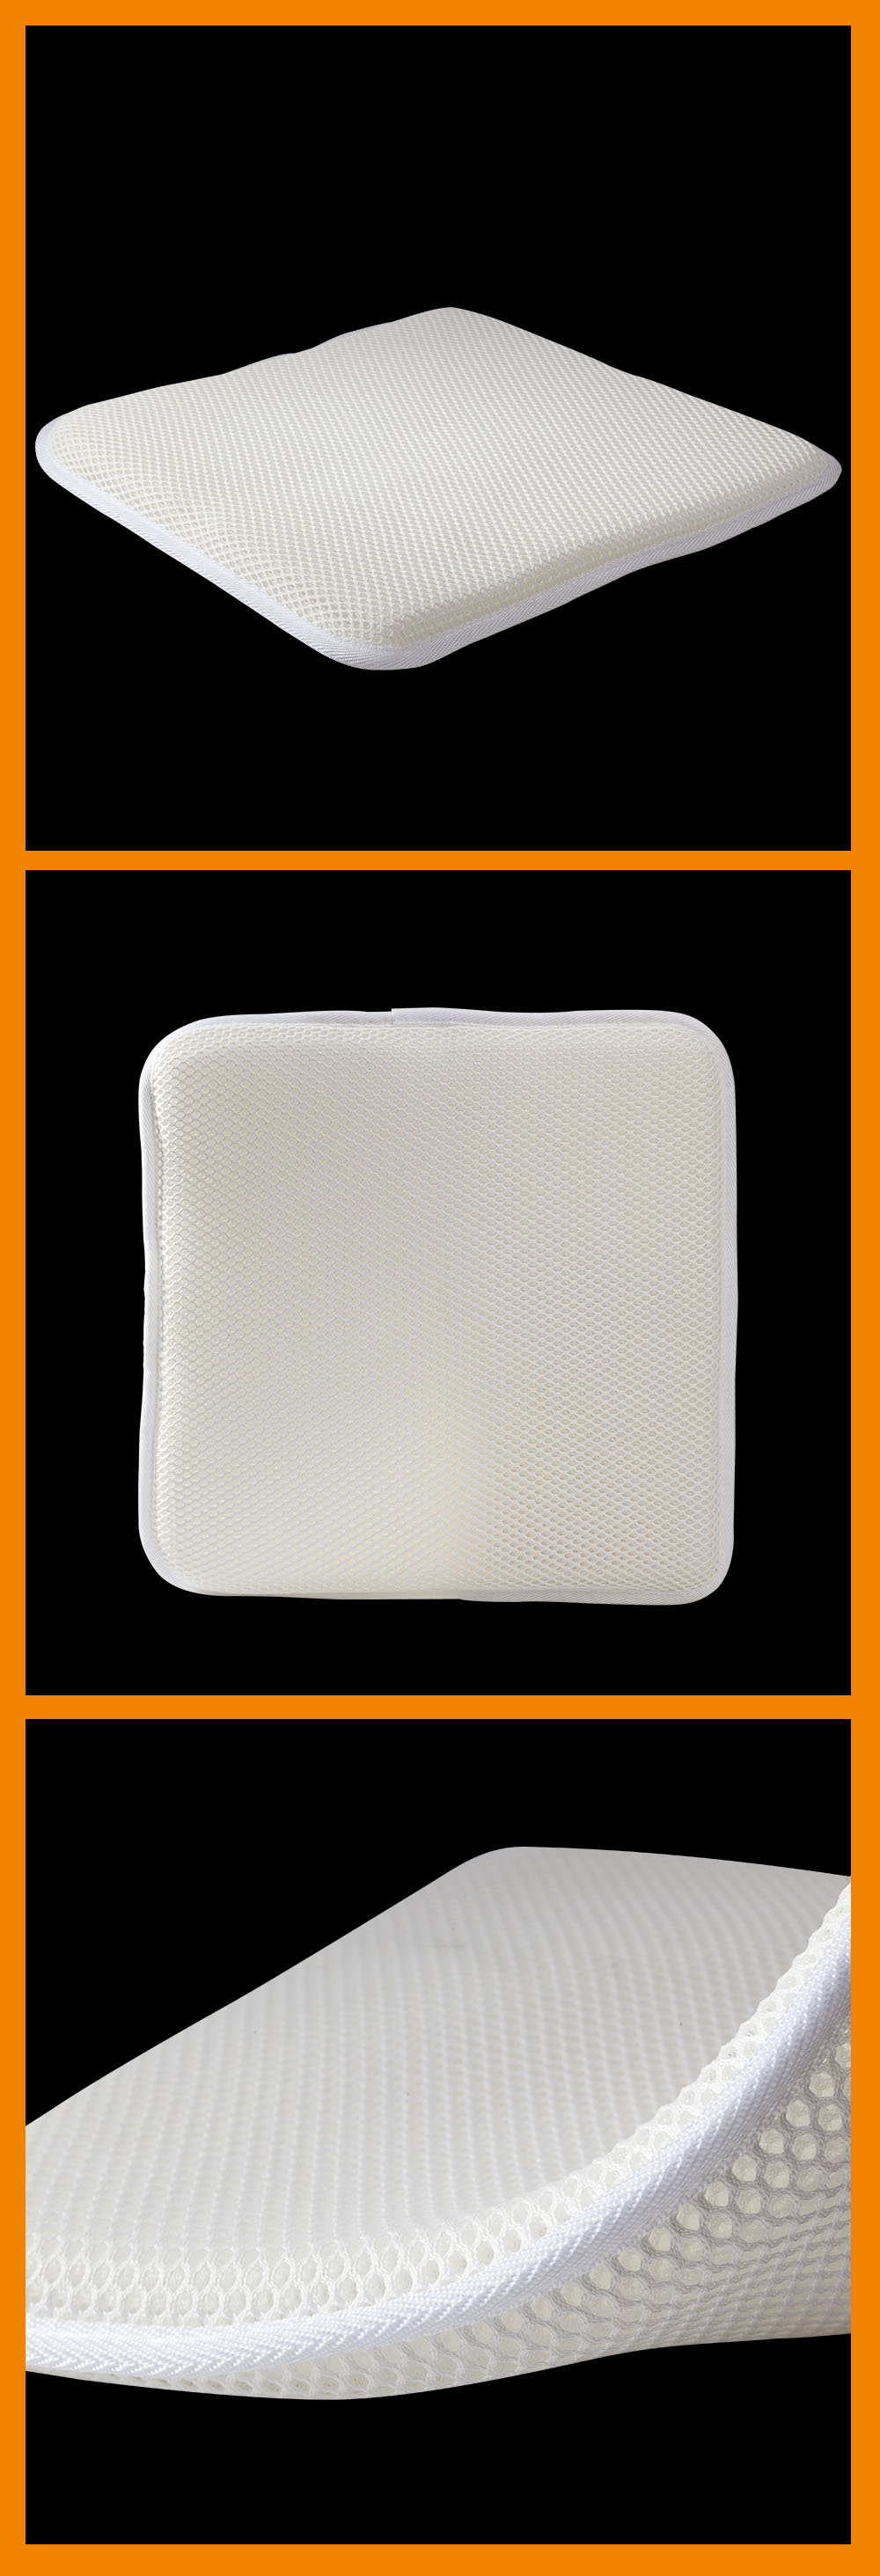 Office square breathable cooling polyester air mesh 3D spacer fabric cushion